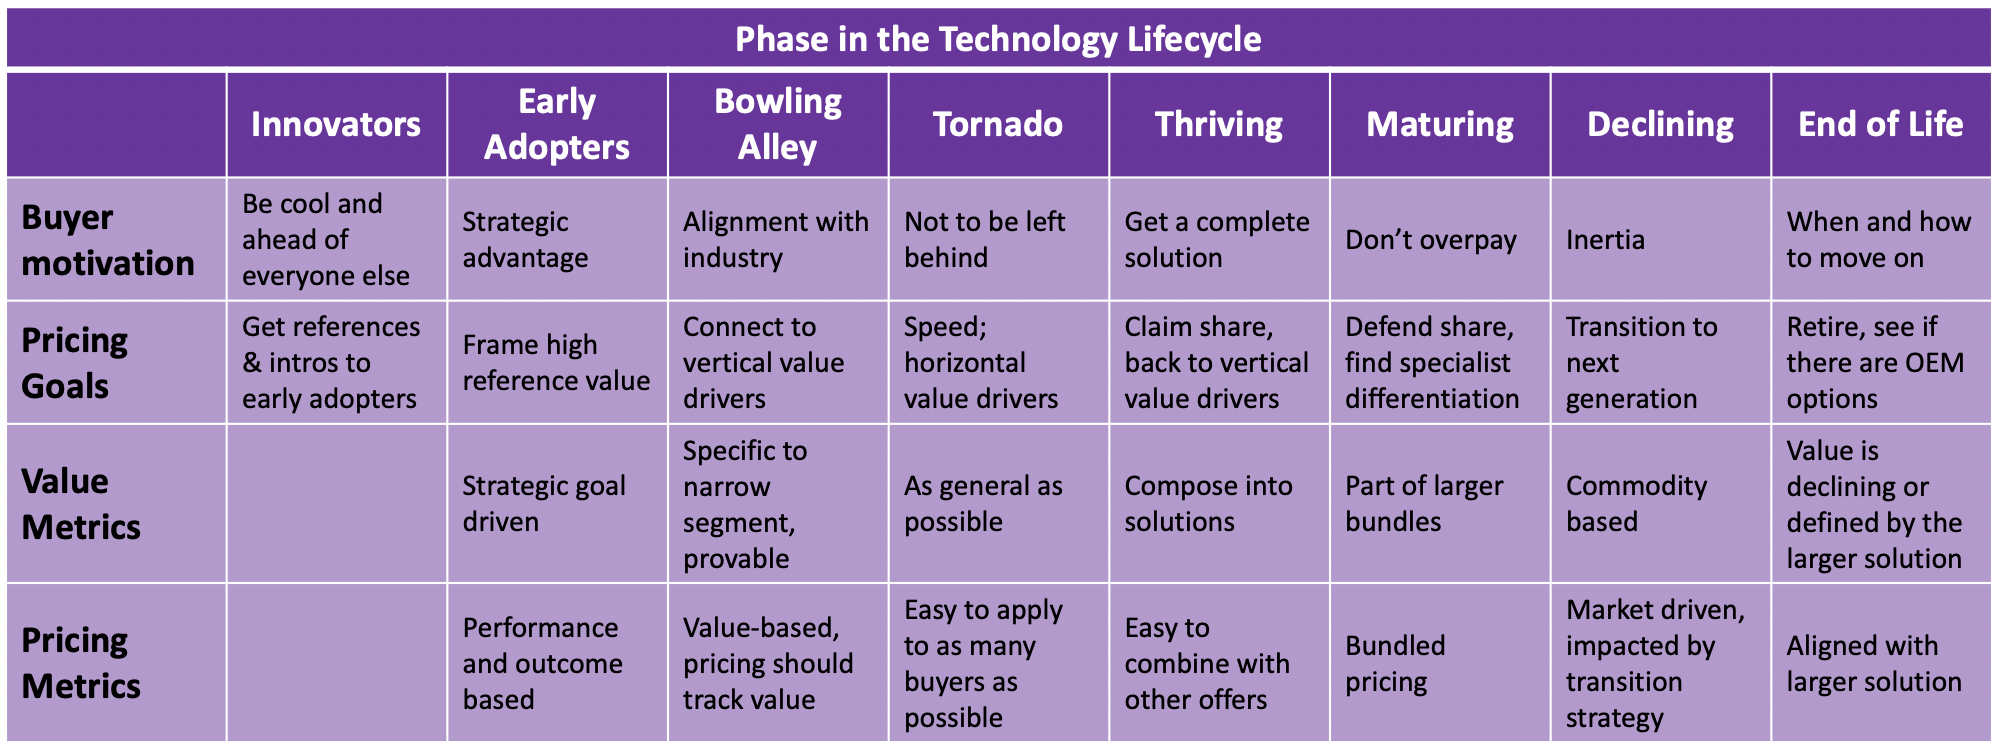 Pricing across the technology lifecycle